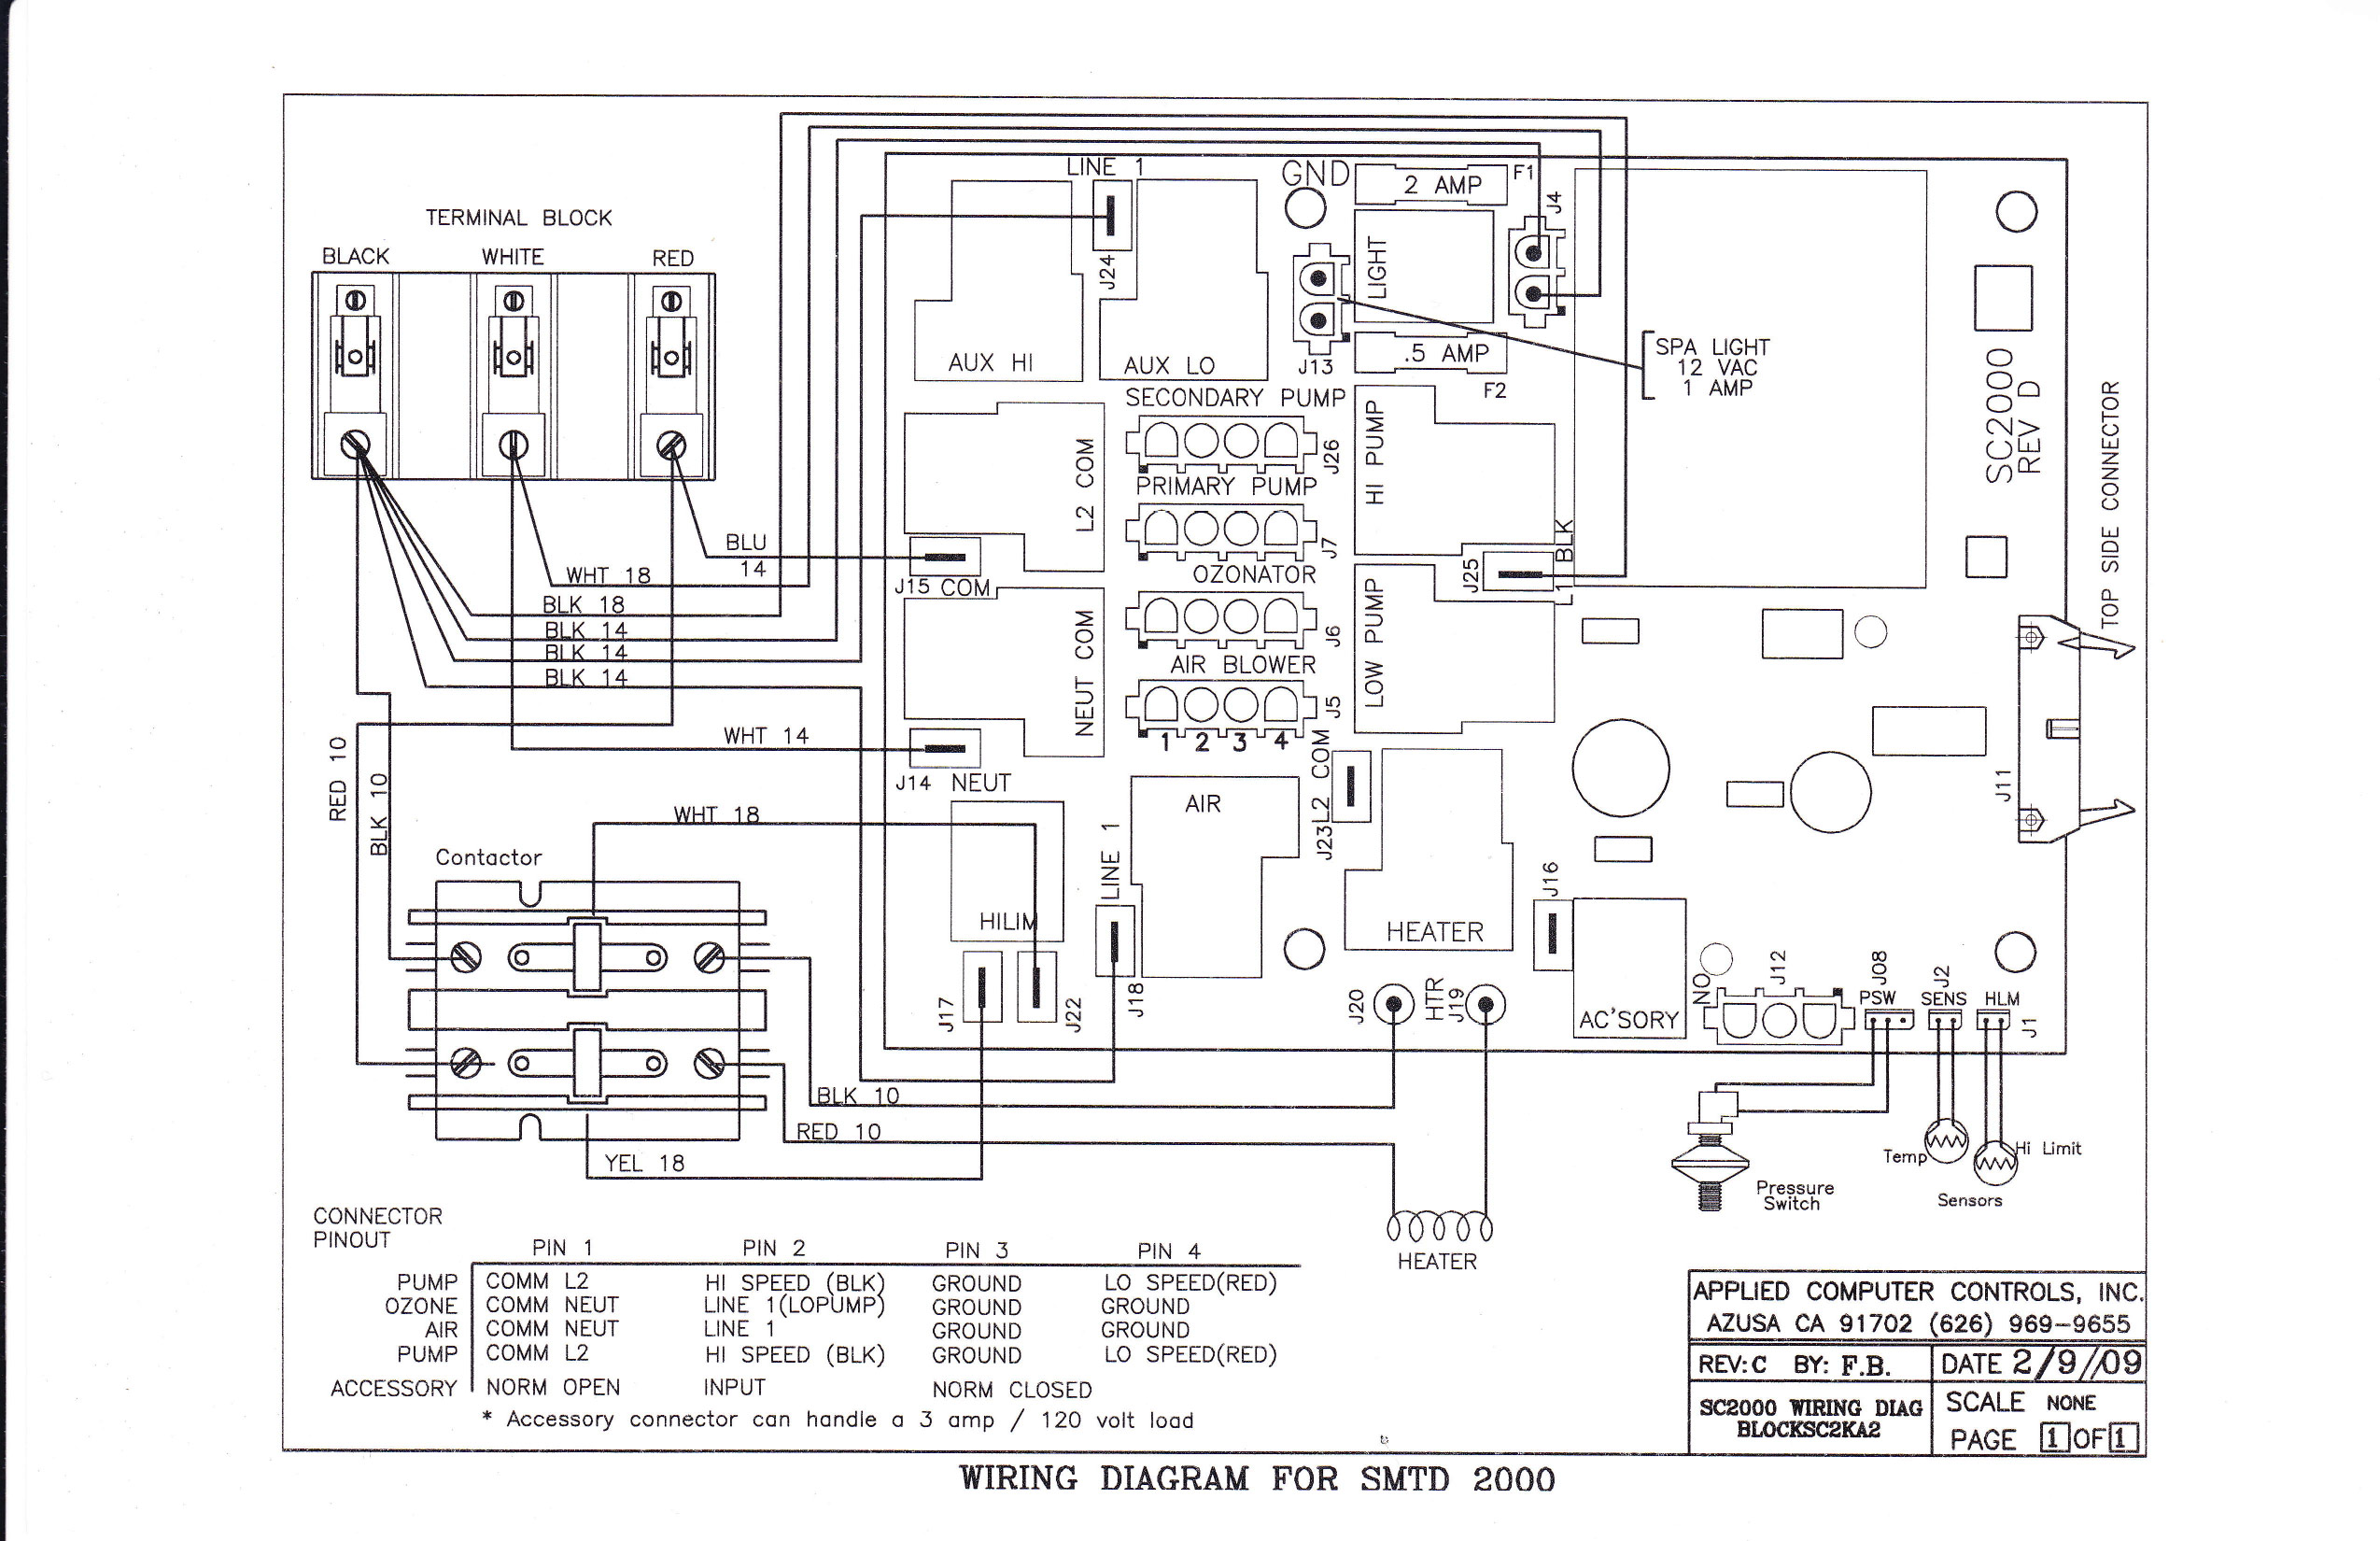 Startrans Bus Wiring Diagrams Electrical Goshen Coach Camera On Images Free Download Supreme Corp